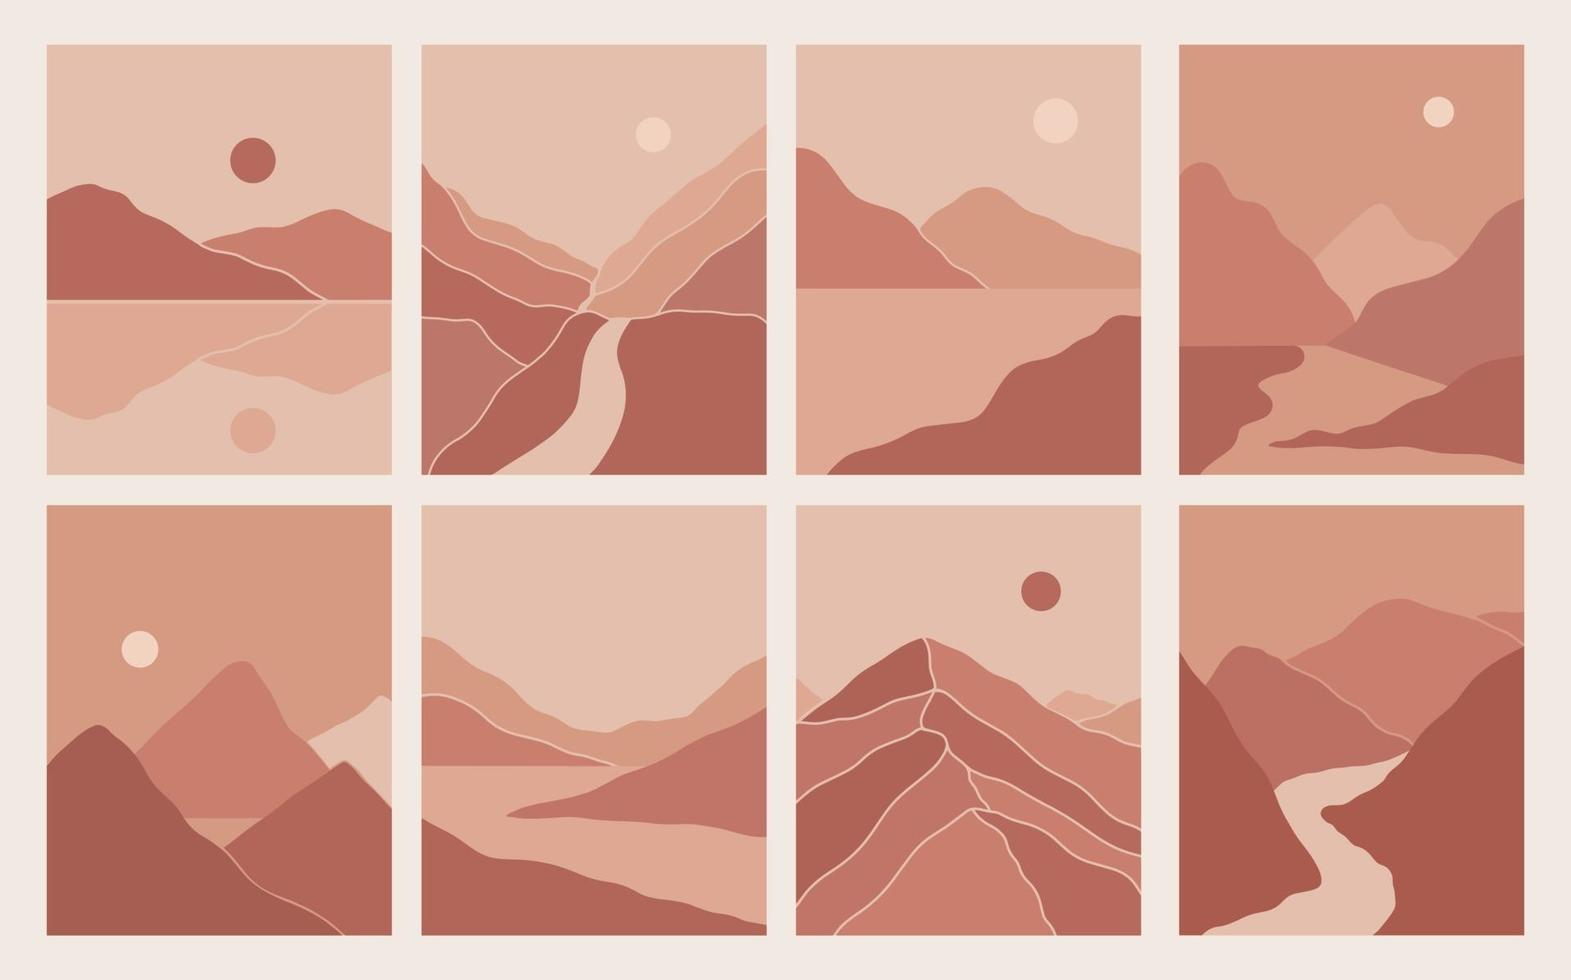 Modern minimalist abstract mountain landscapes aesthetic illustrations. Bohemian style wall decor. Collection of contemporary artistic prints vector